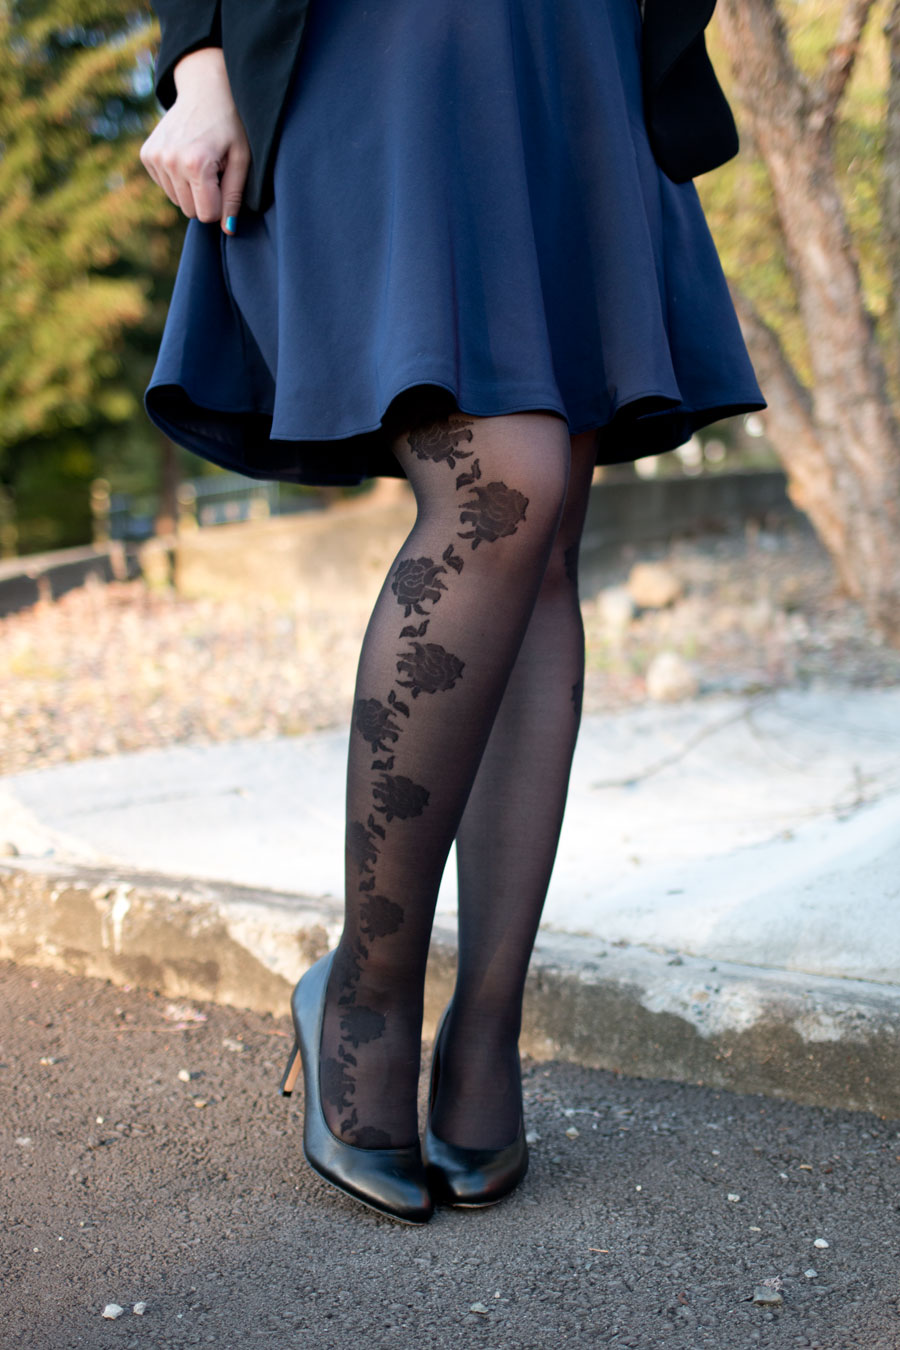 Tia Tights UK Gardenia in Black with Navy Skirt Outfit / hellorigby seattle fashion blog